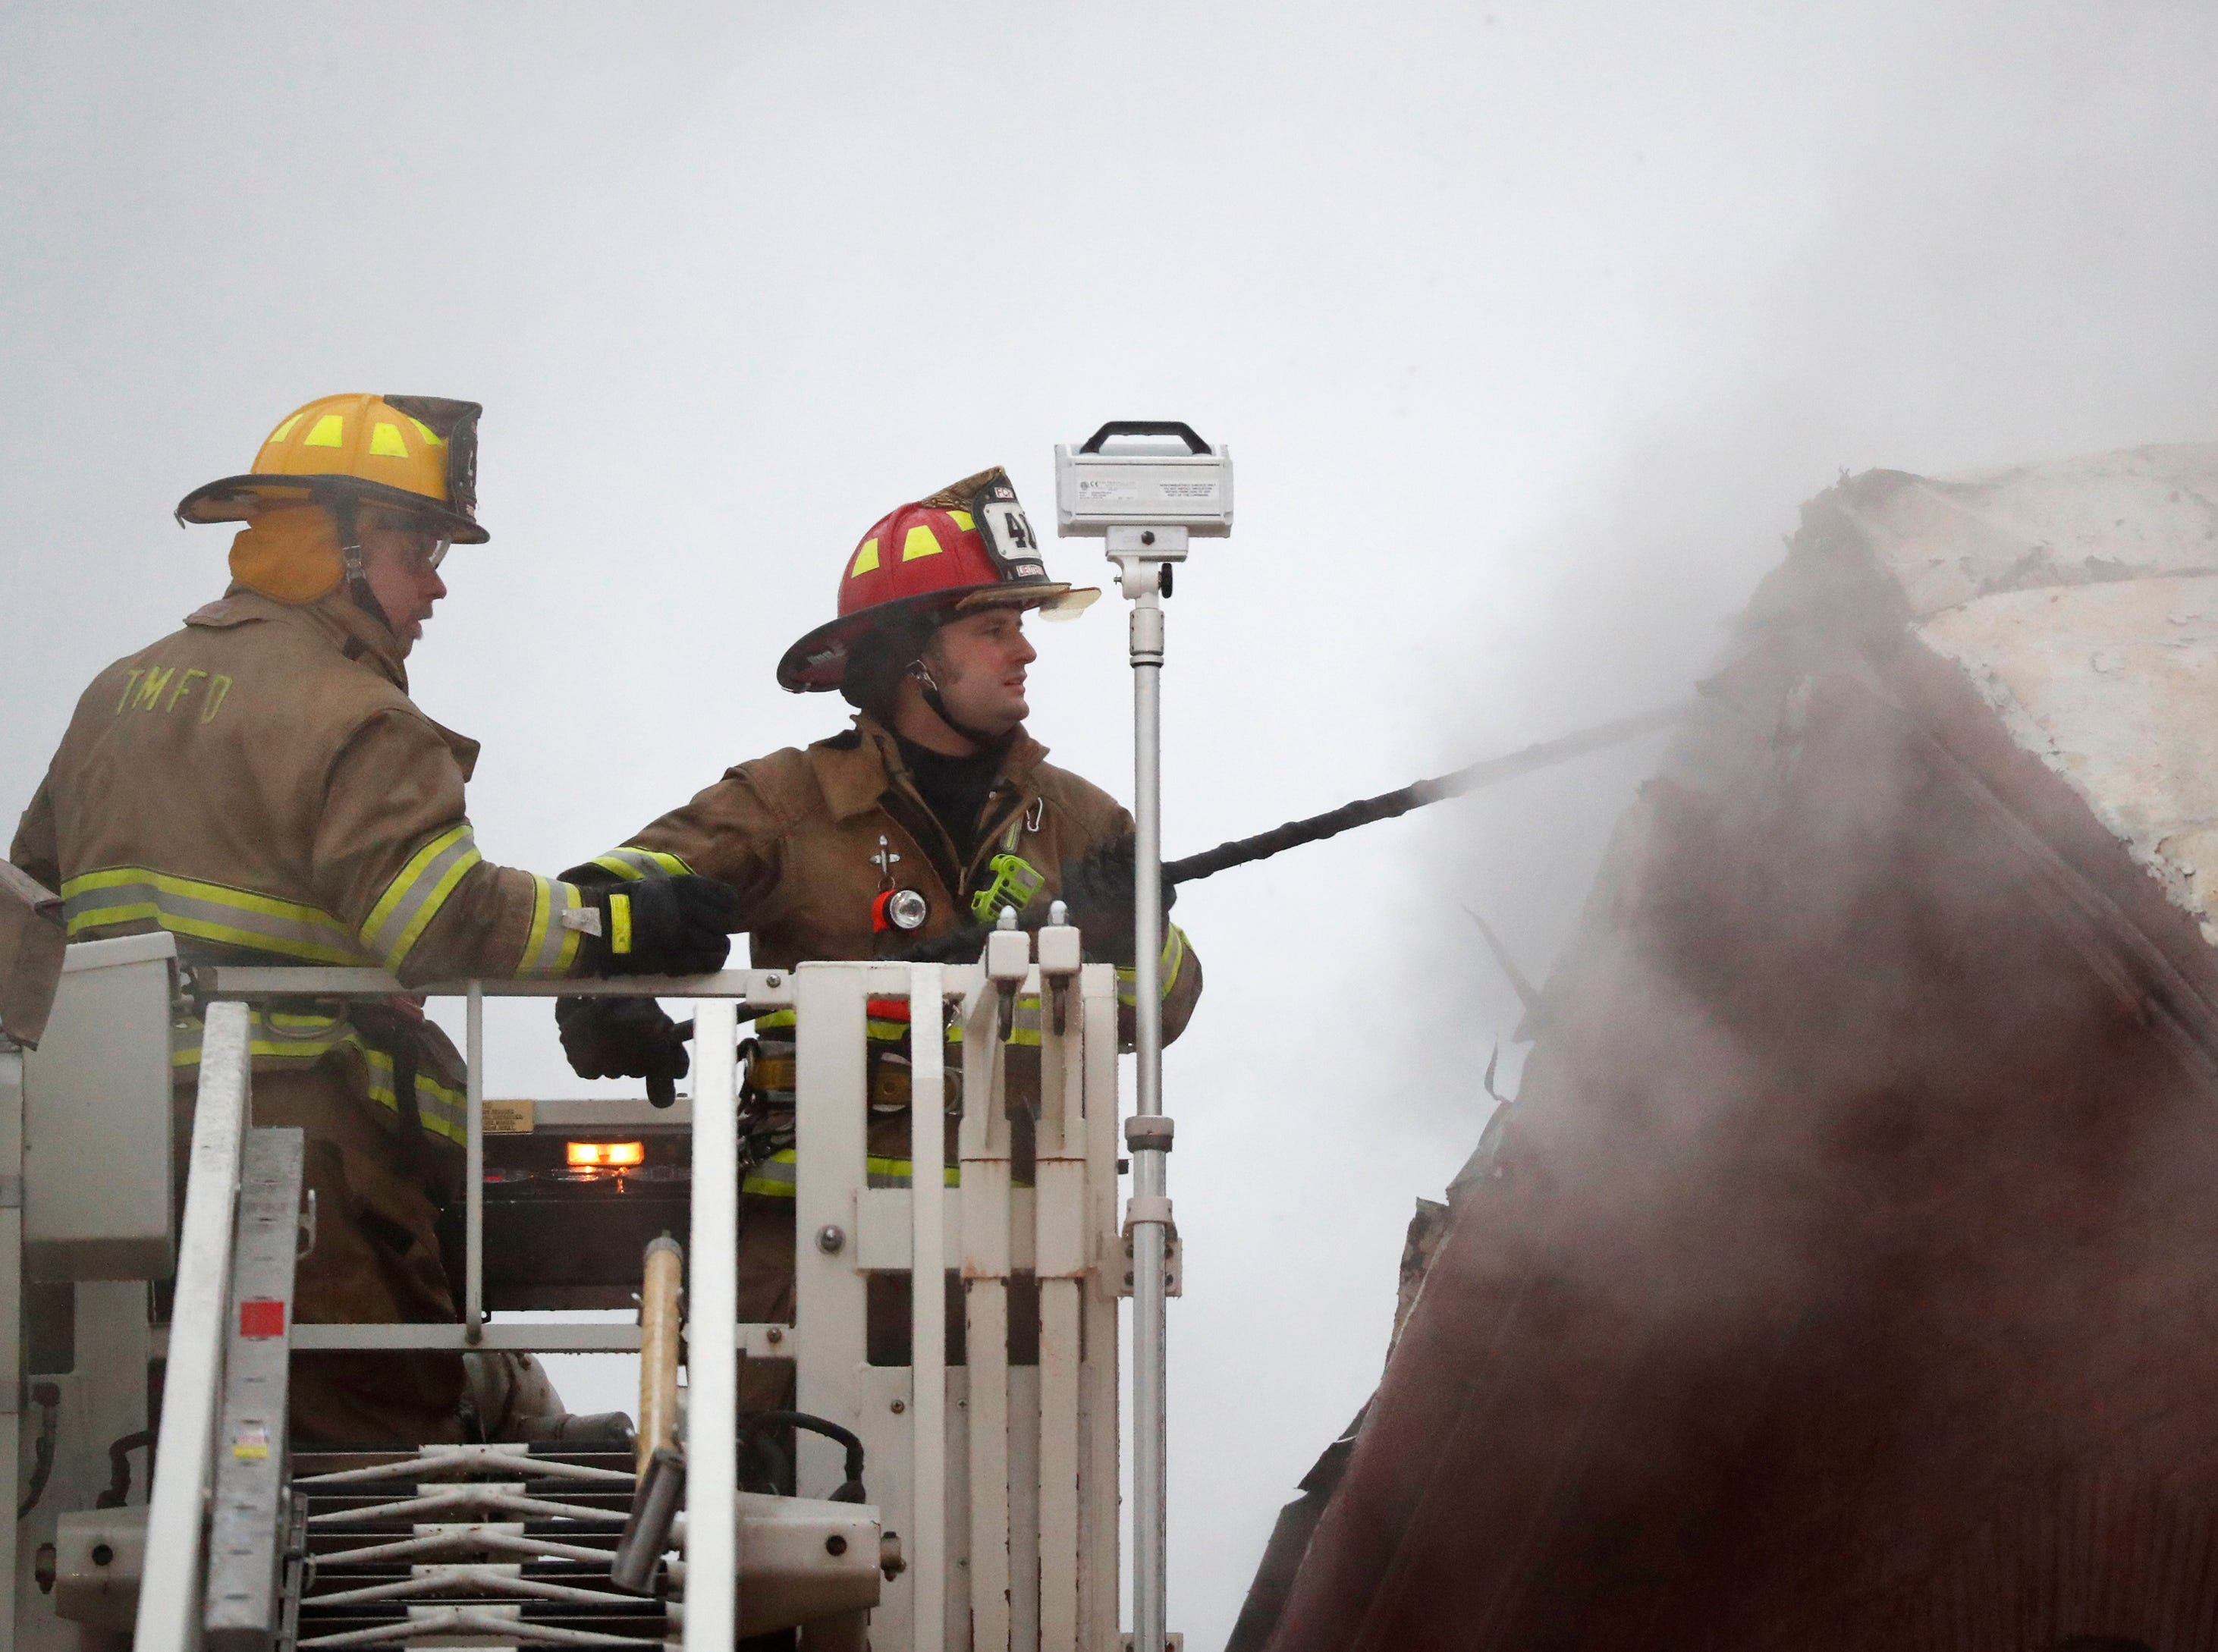 Firefighters open the peak of the roof while putting out a structure fire in downtown Appleton on the corner of West Washington and North Appleton Streets Wednesday, March 13, 2019, in Appleton, Wis. Danny Damiani/USA TODAY NETWORK-Wisconsin